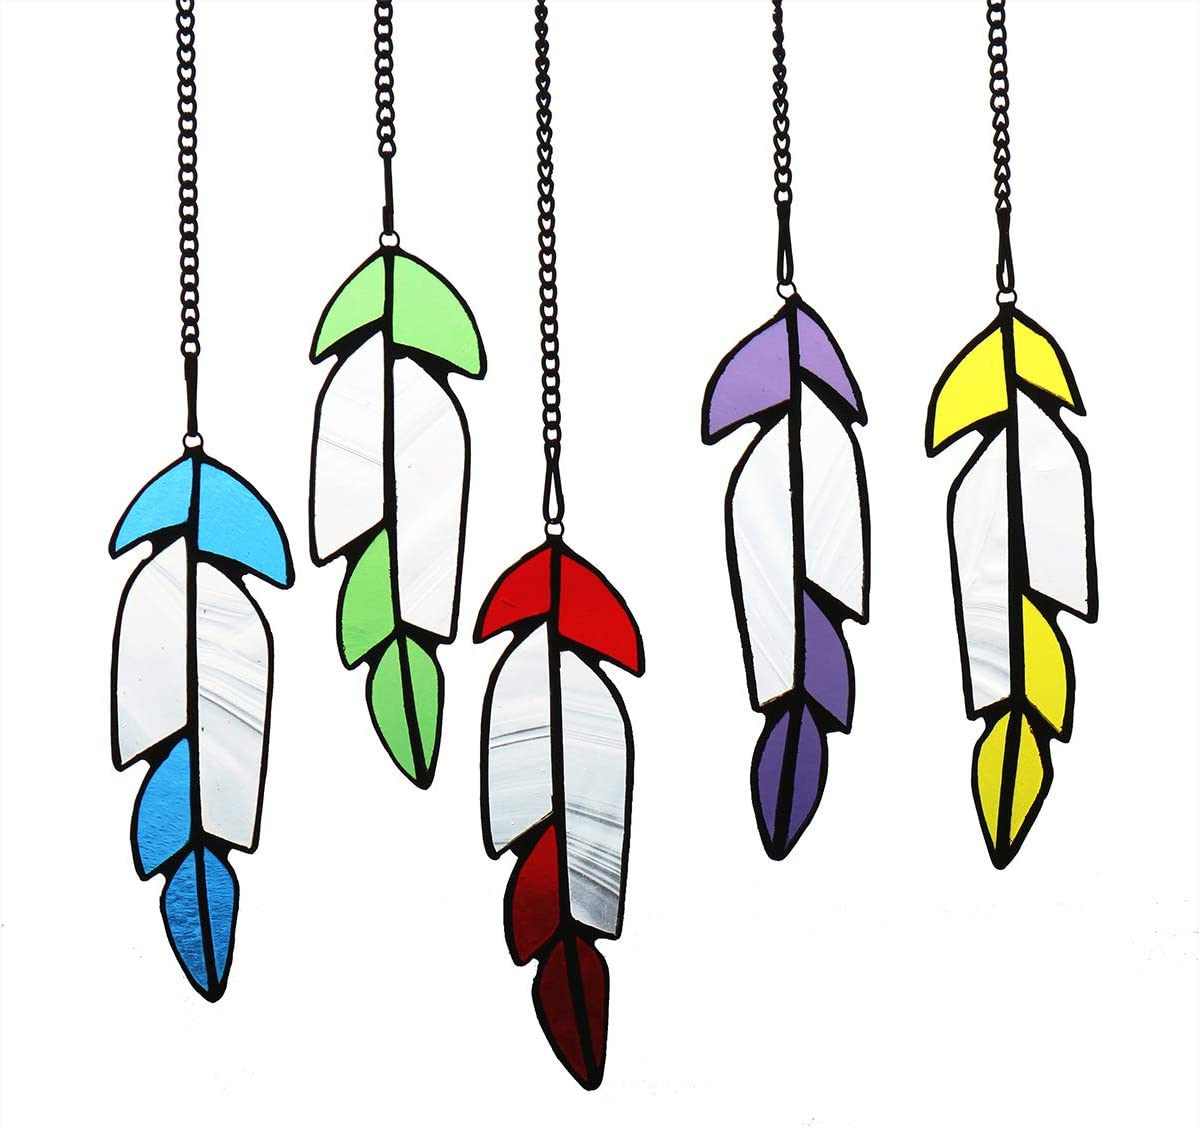 HAOSUM Feather Decor Stained Glass Window Hanging Boho Decor Tiffany Style Suncatcher